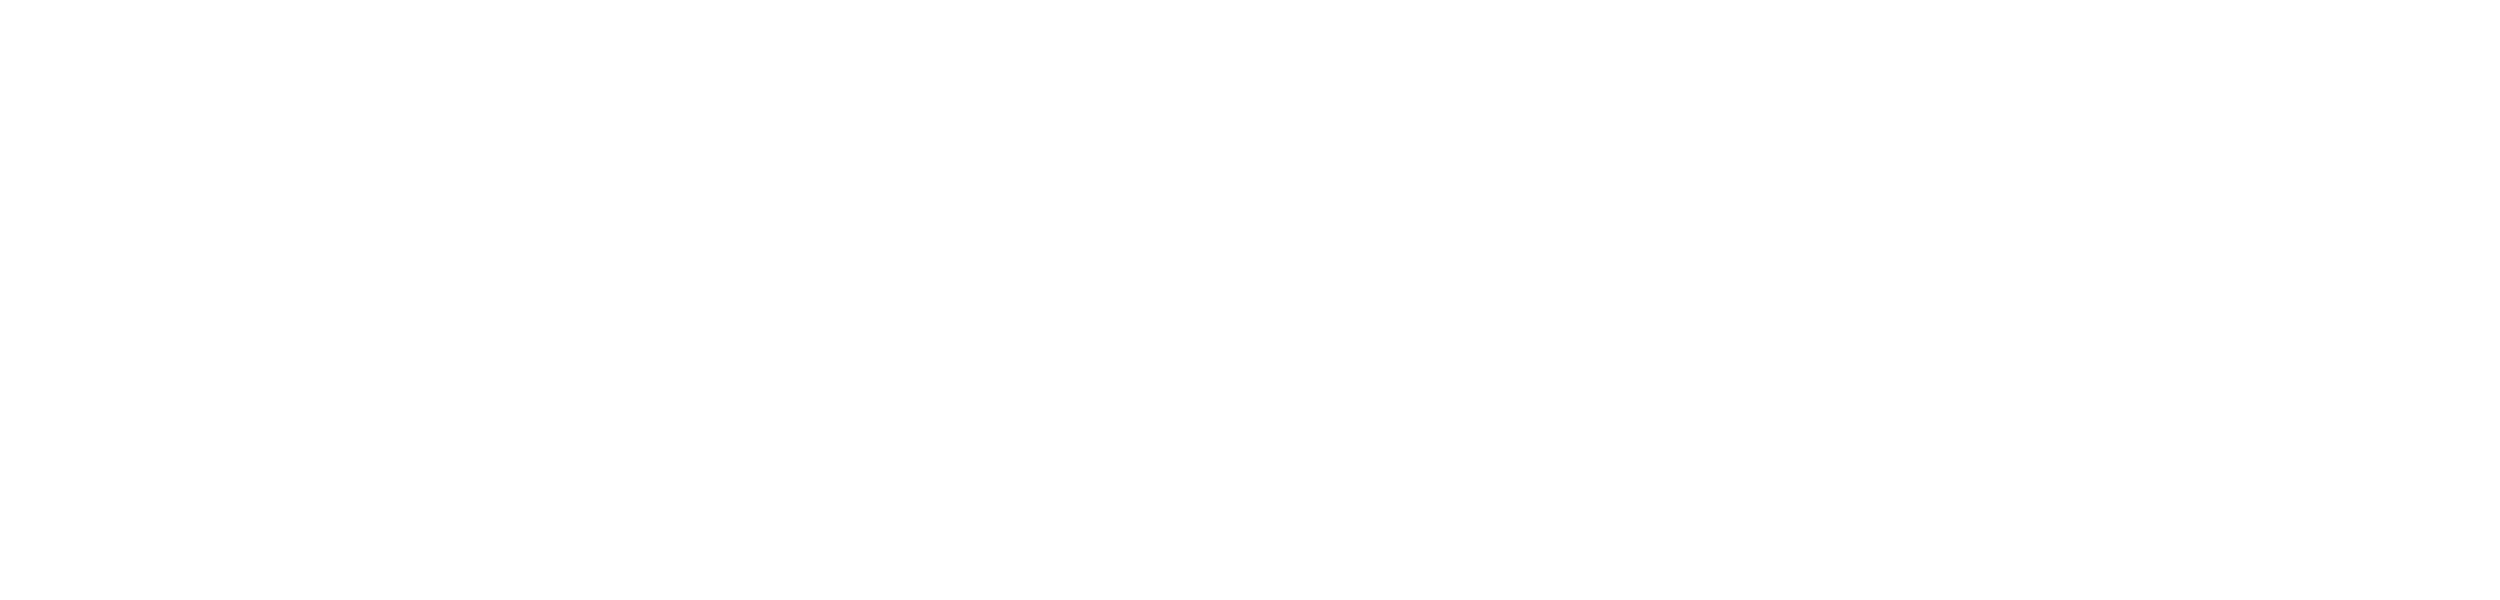 Custom BuddyPress Development Services